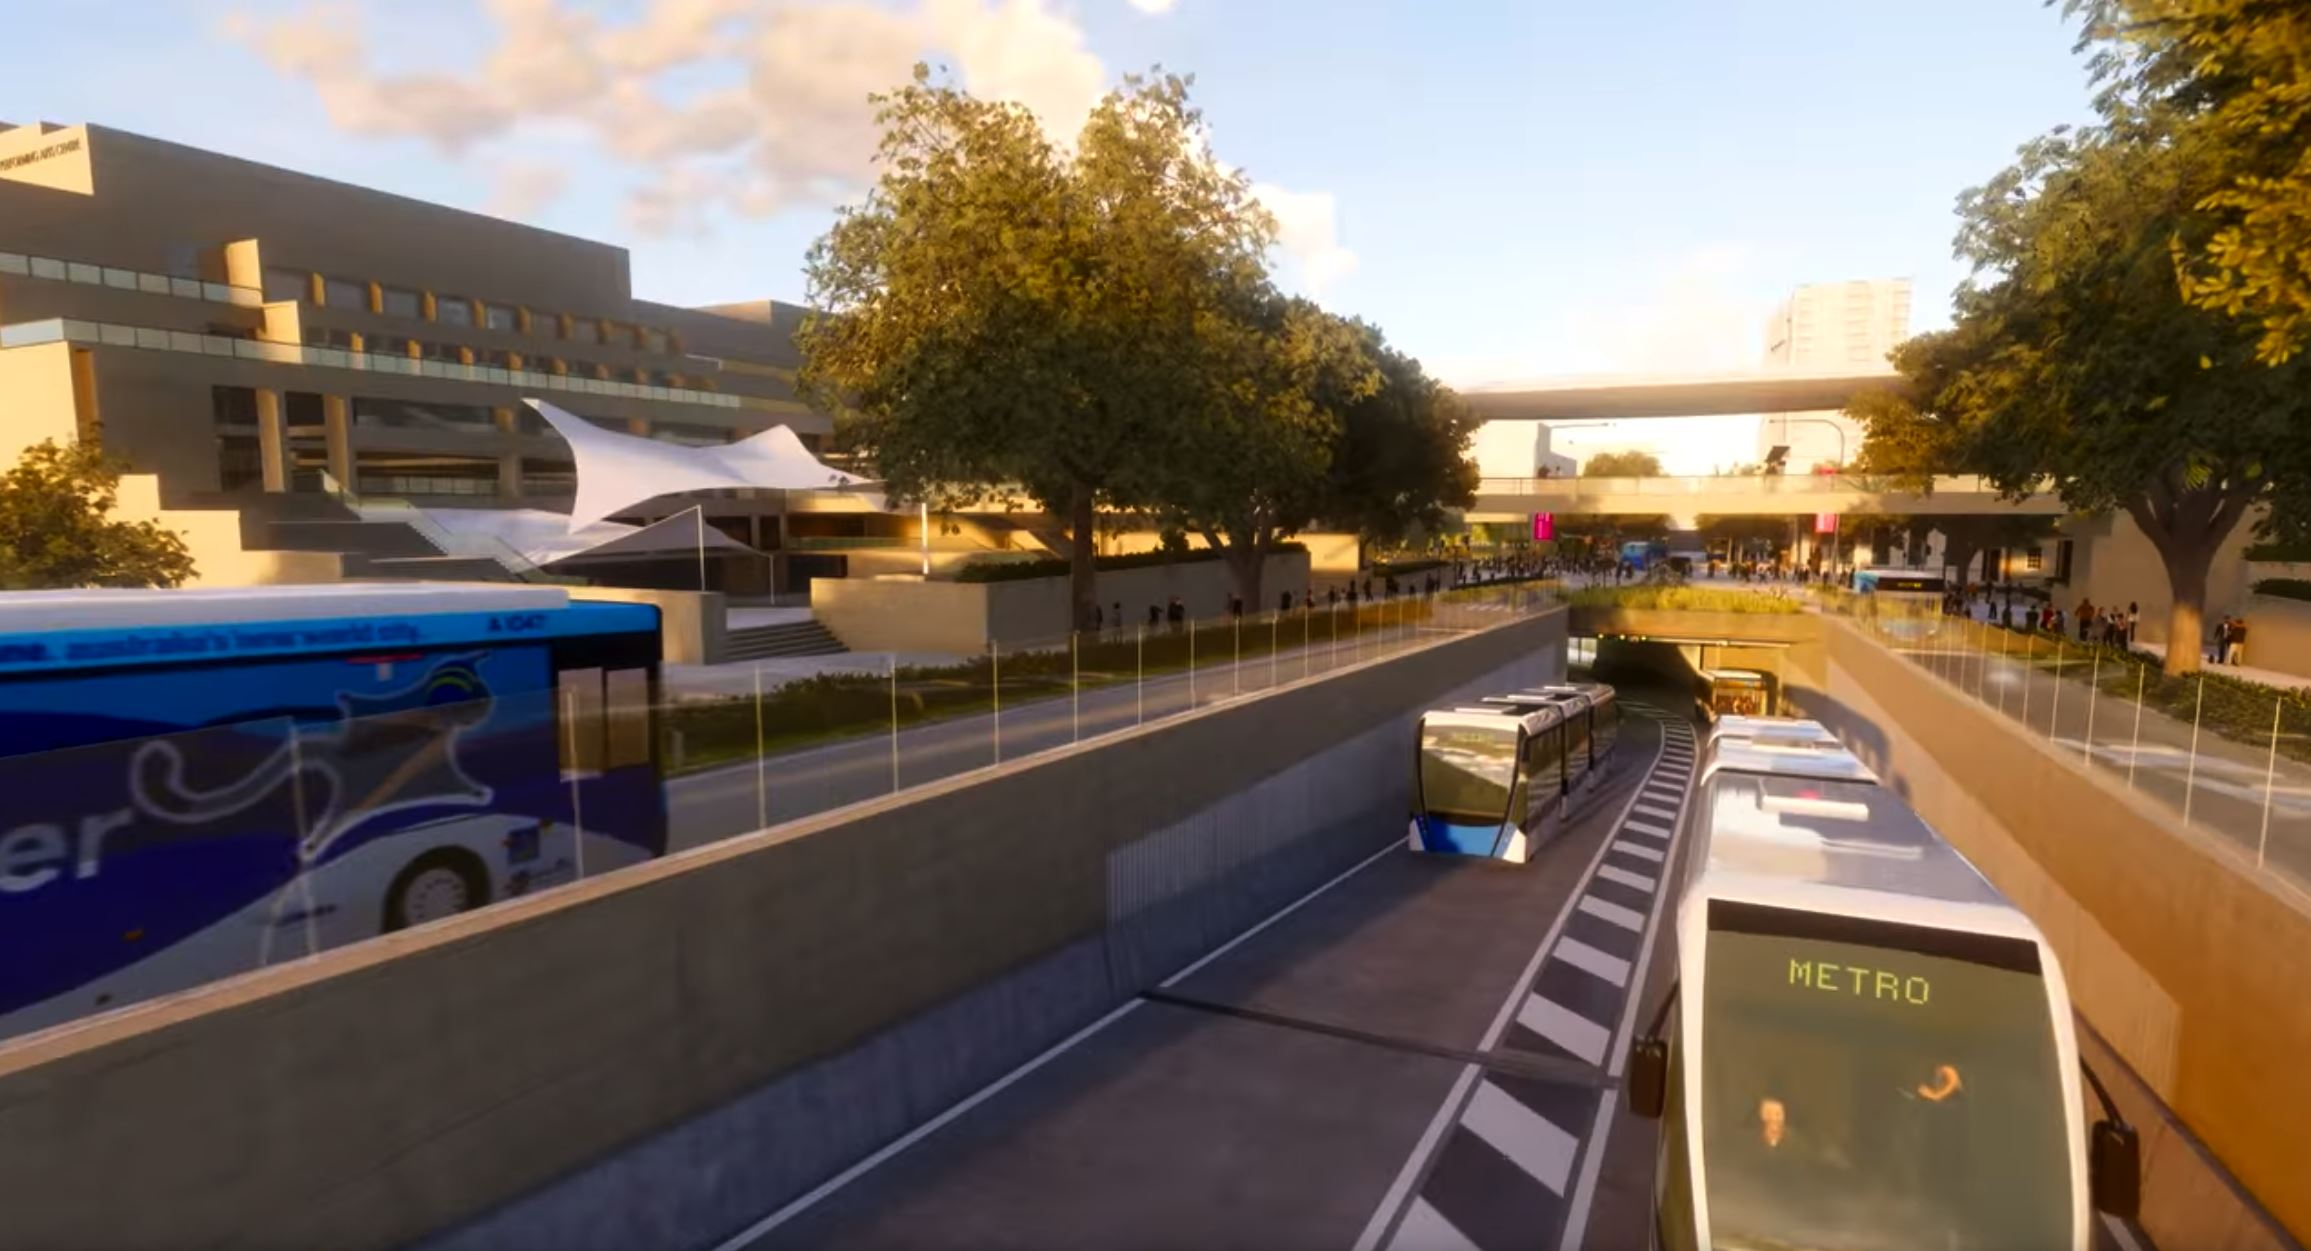 Brisbane City Council released the fly-through vision of the station.